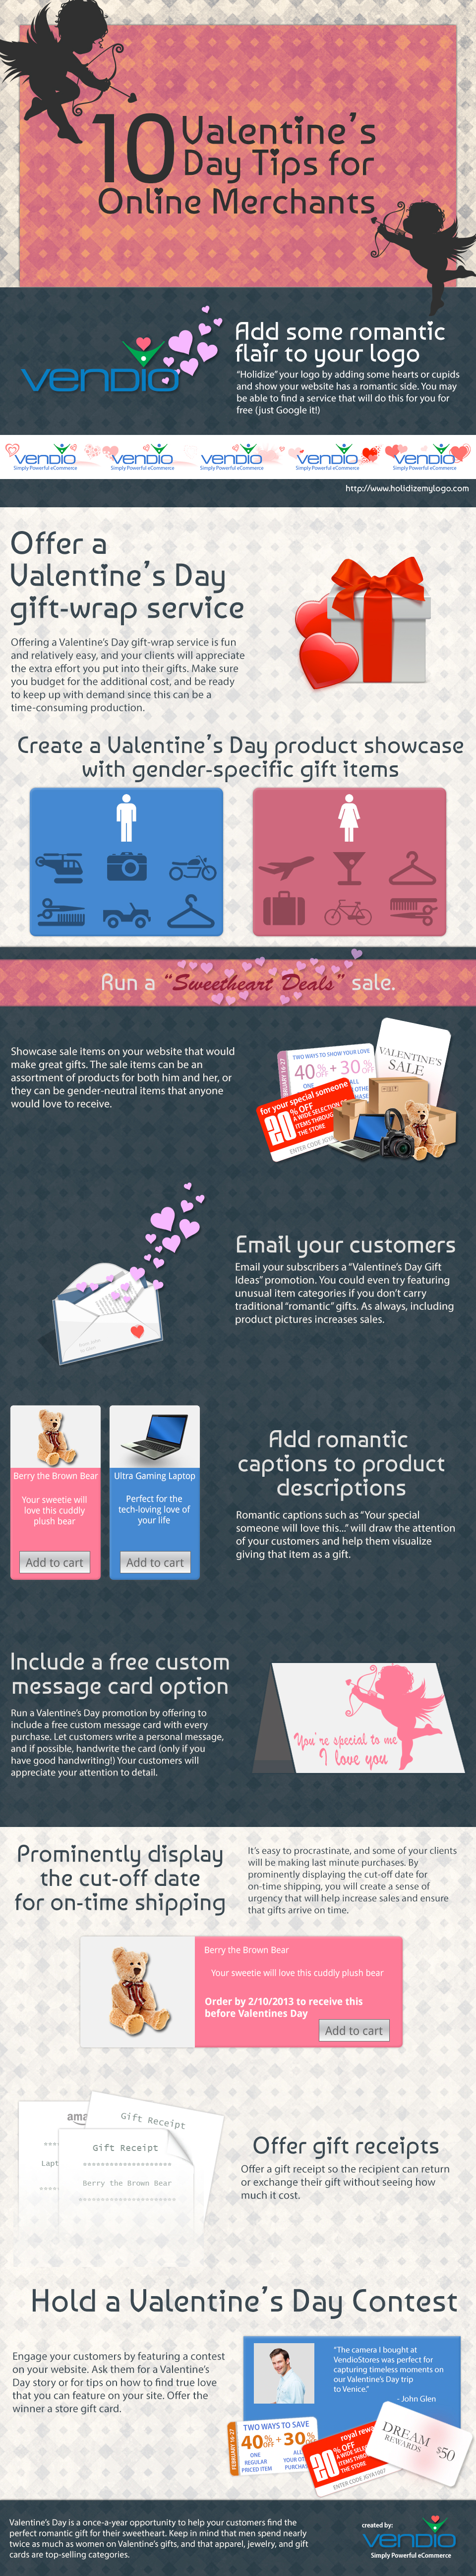 10 Valentine's Day Tips for Ecommerce SMB Merchants